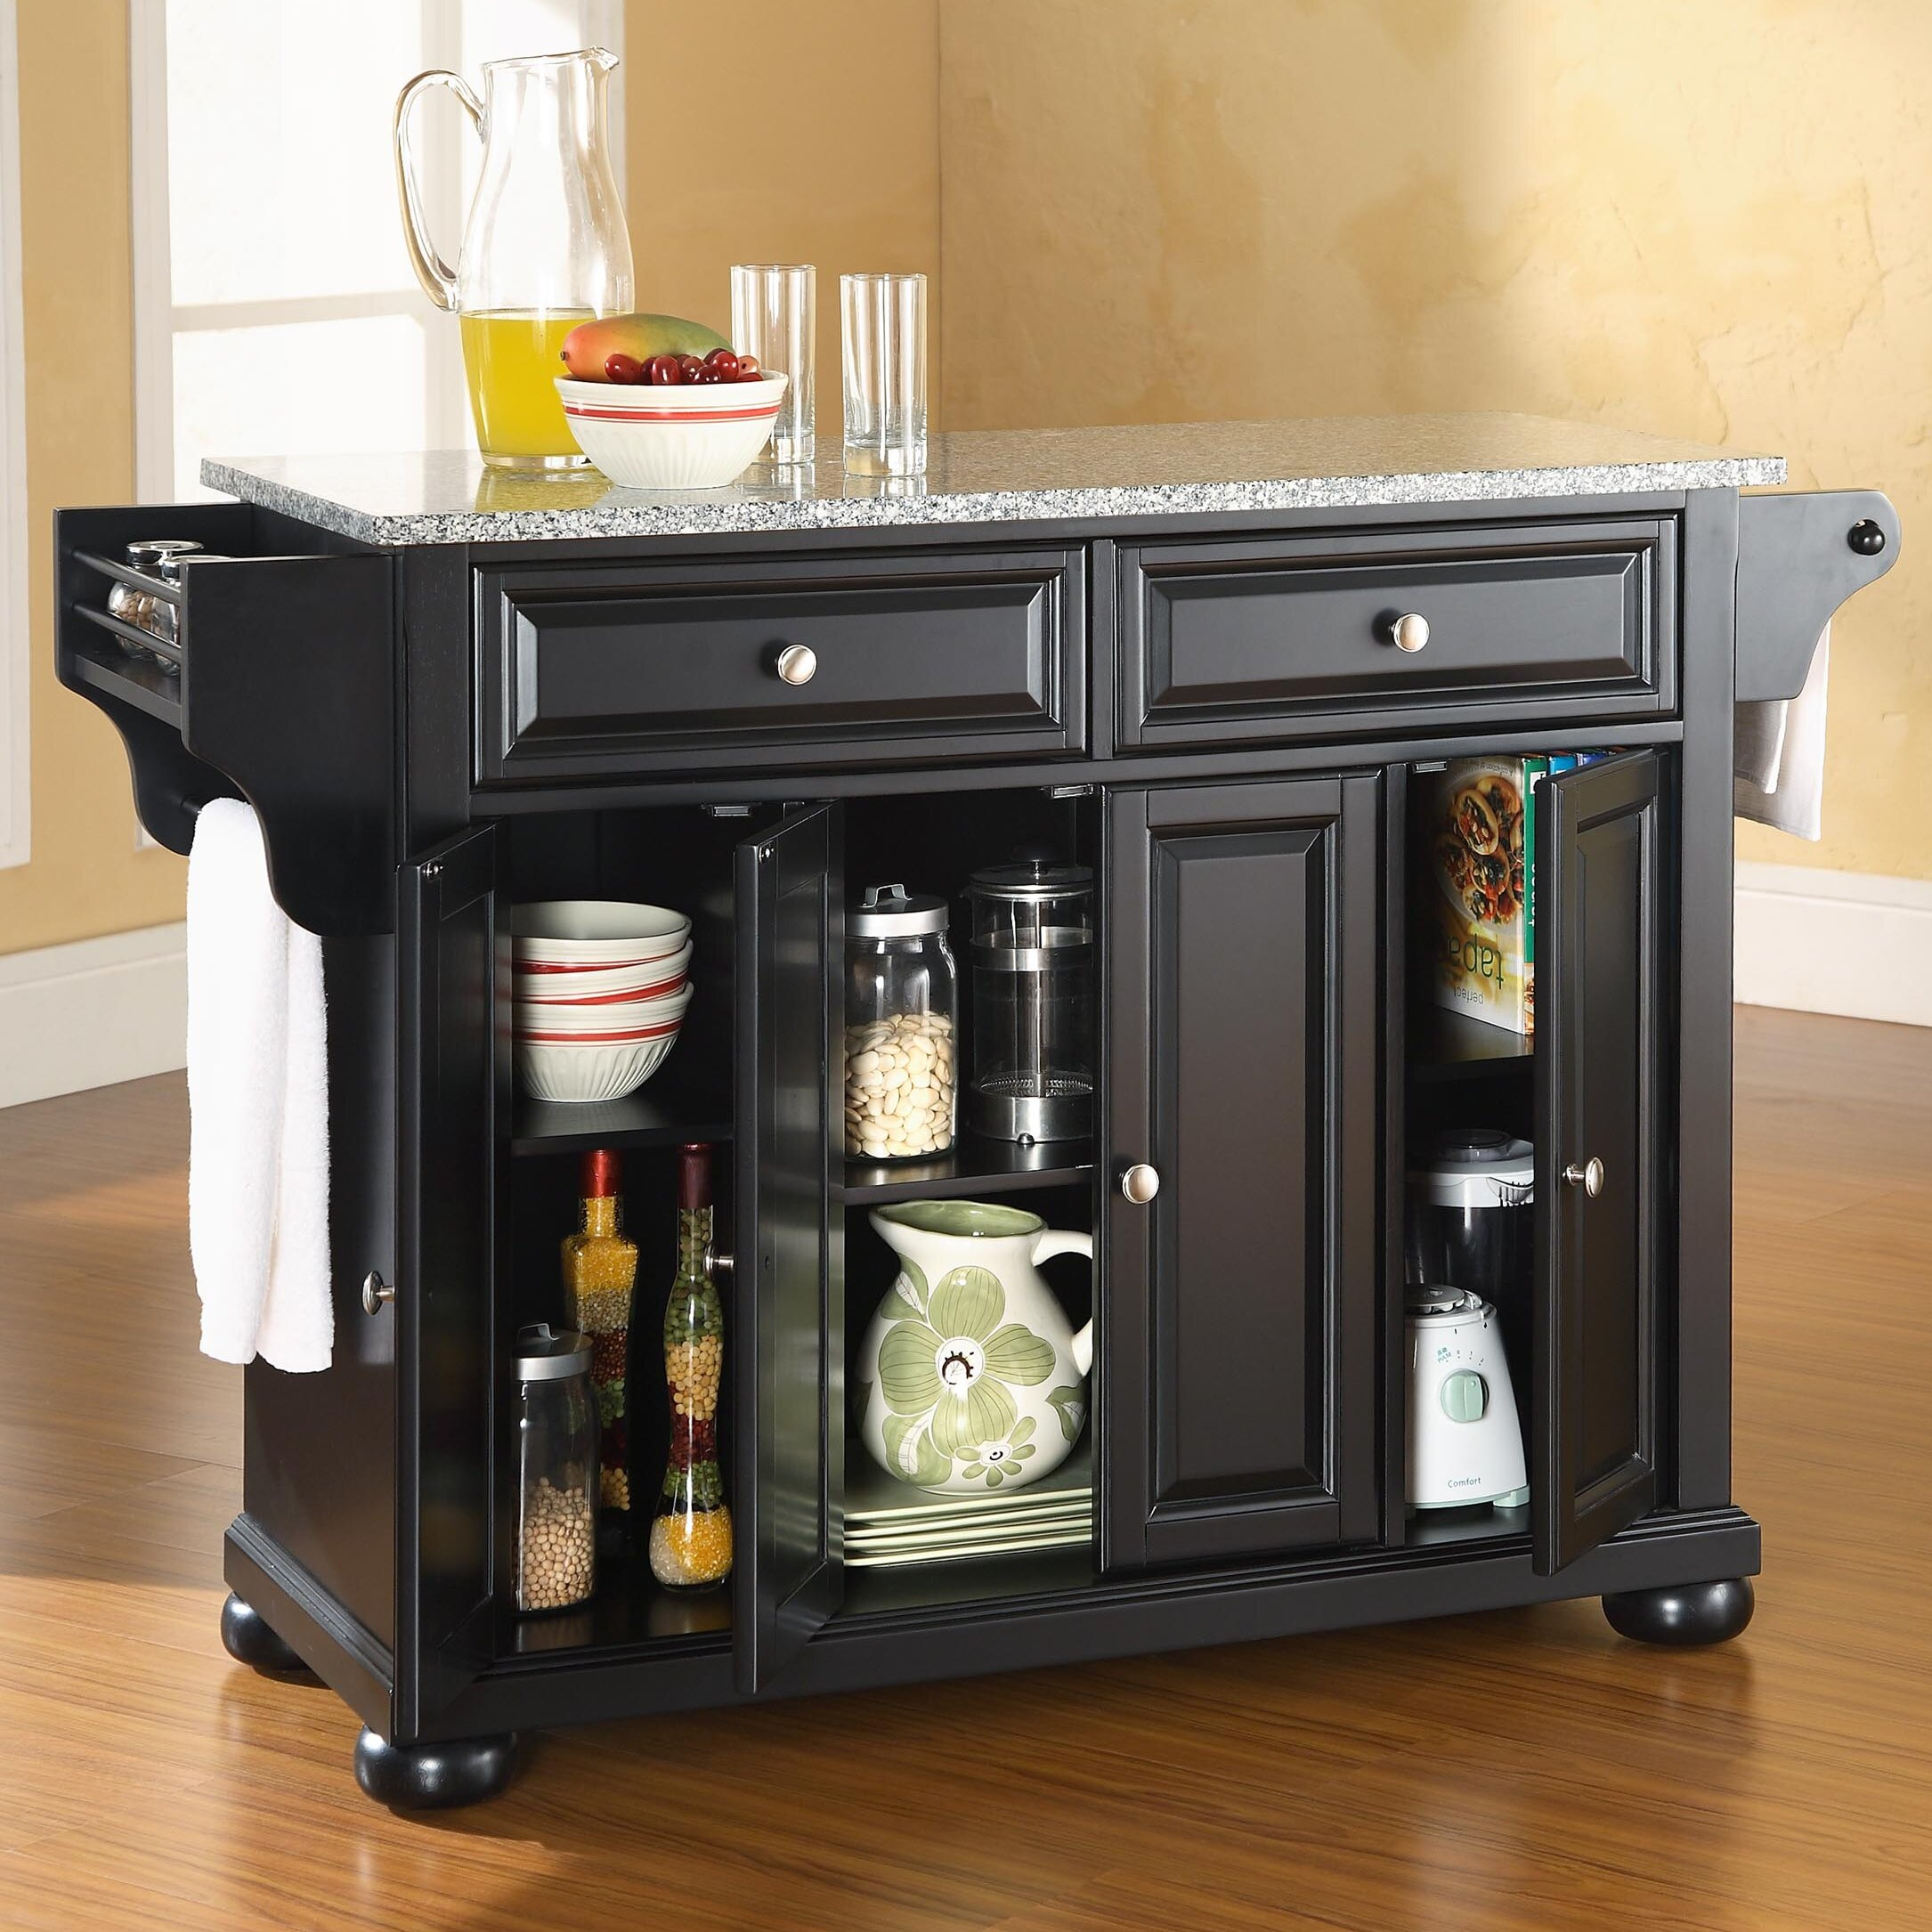 Darby Home Co Pottstown Kitchen Island With Granite Top Reviews Wayfair